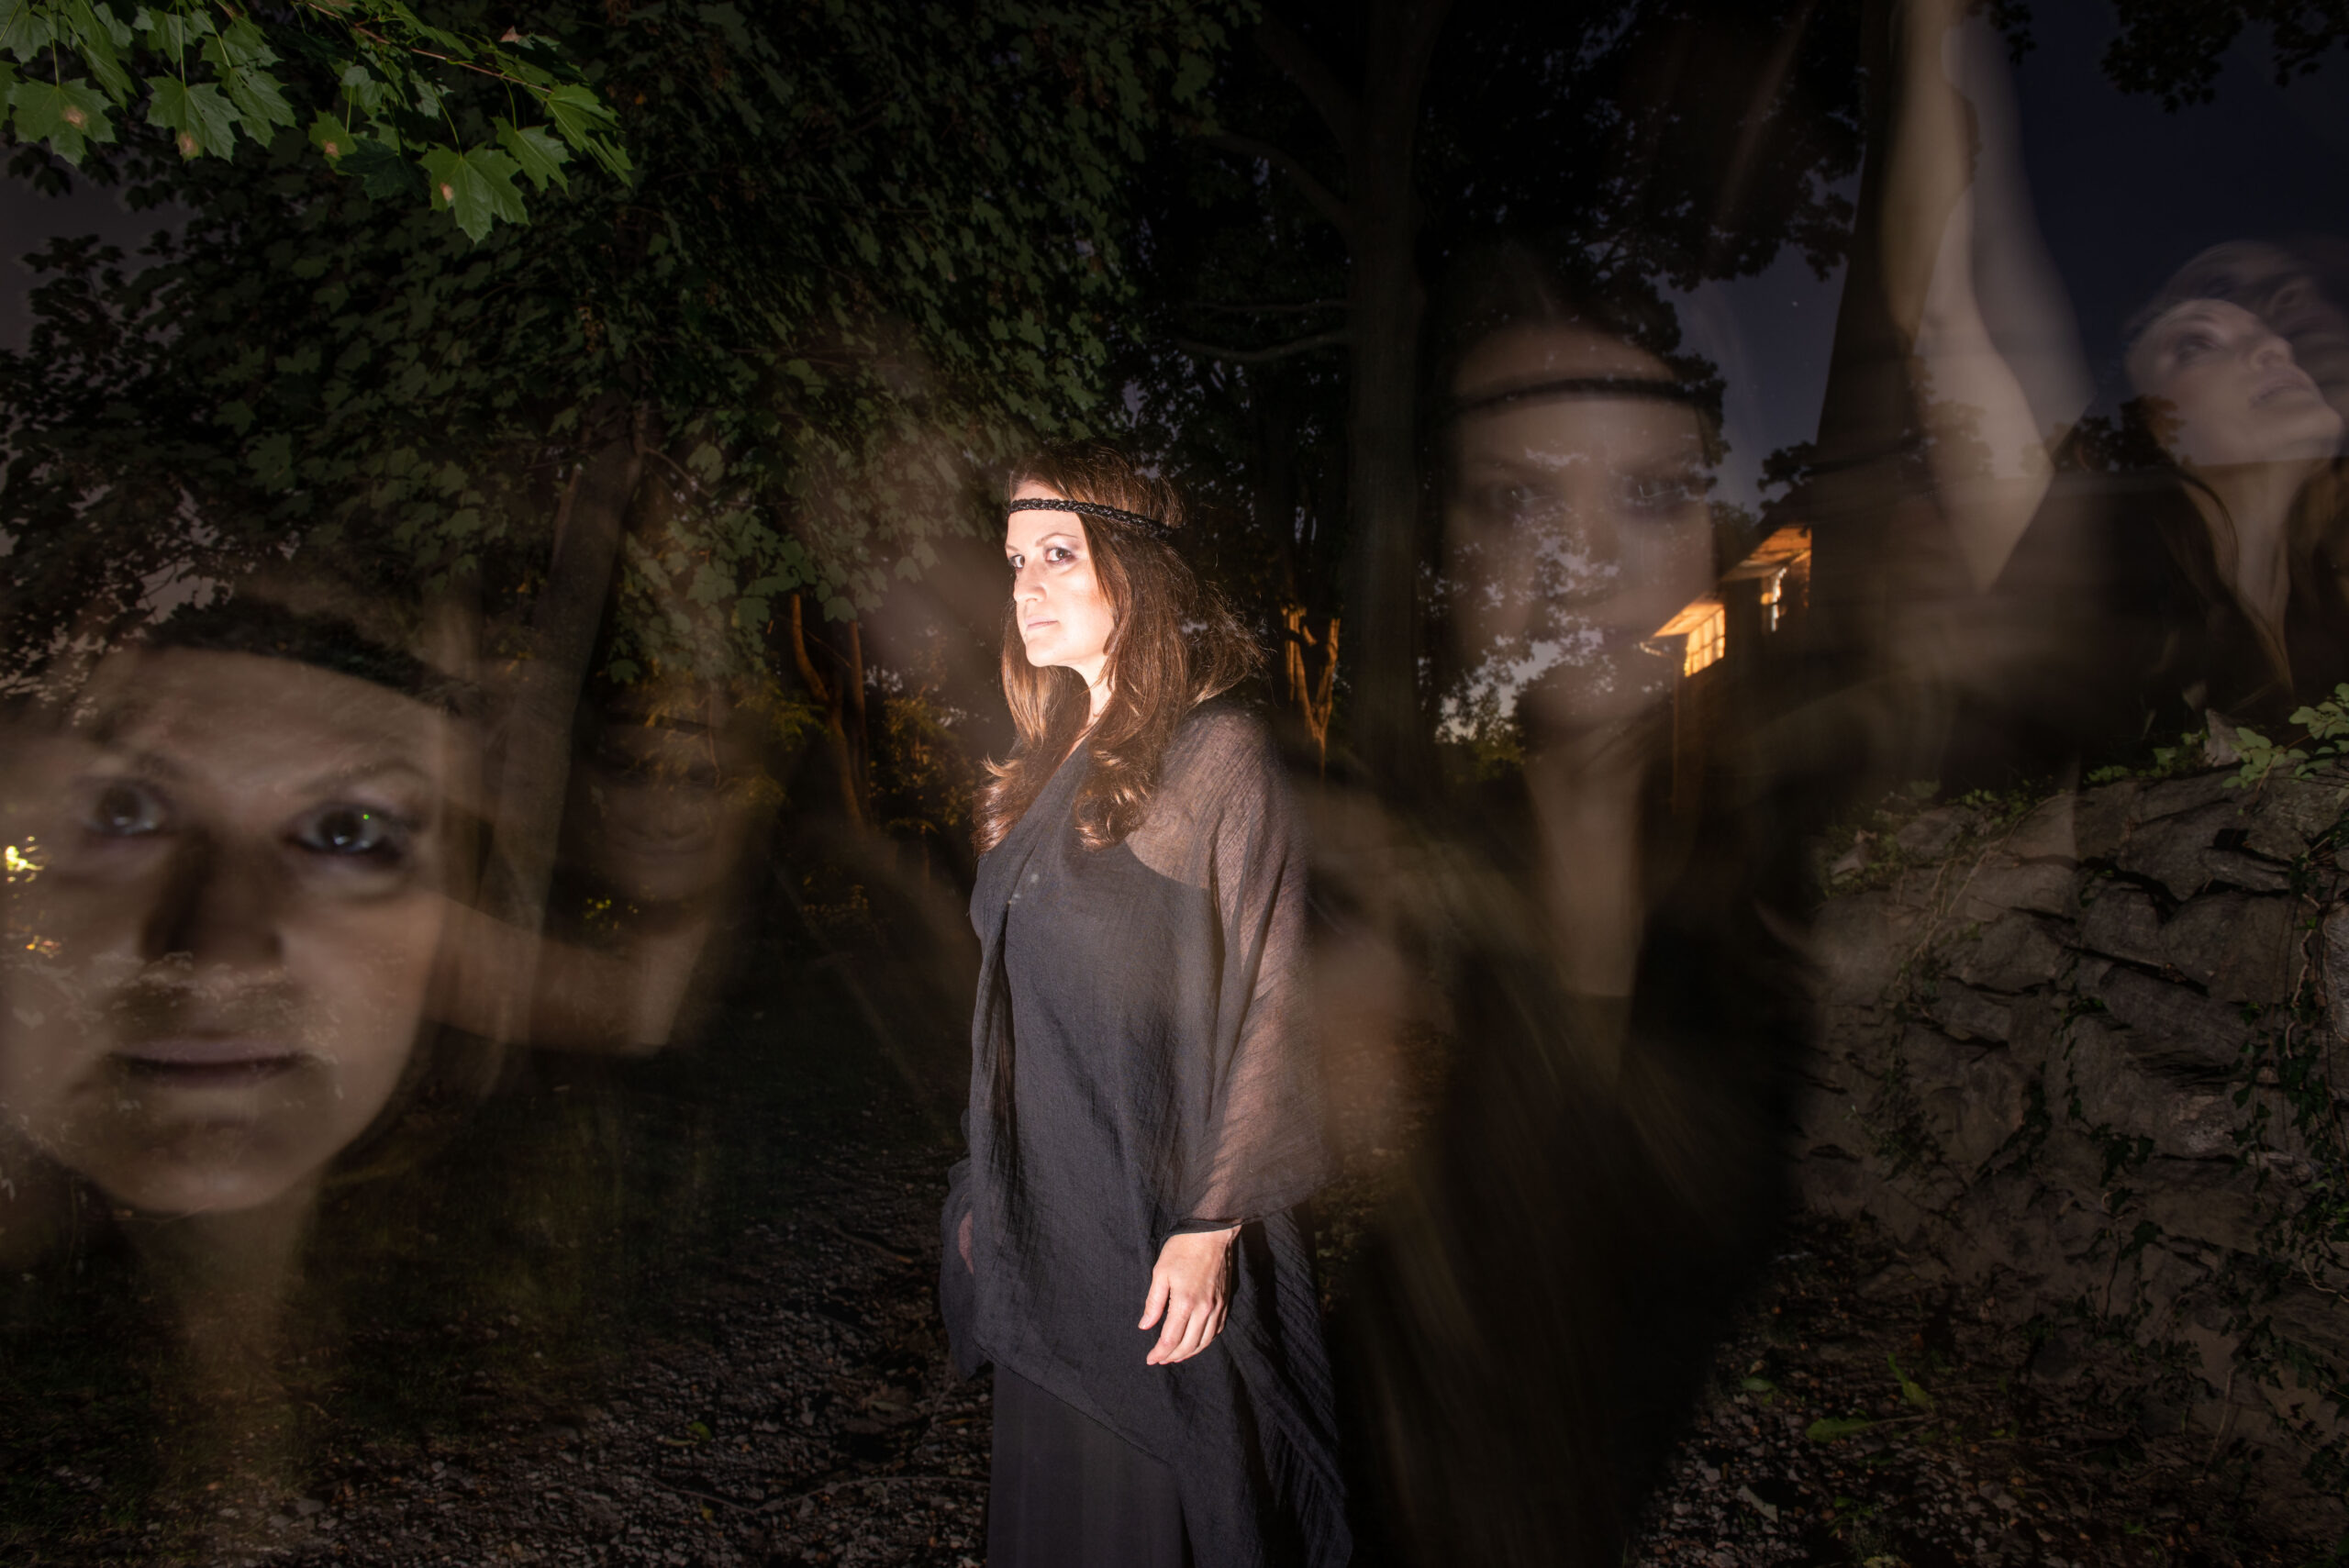 River's Edge Theatre Presents Spooky Stories Inspired by Hudson Valley History